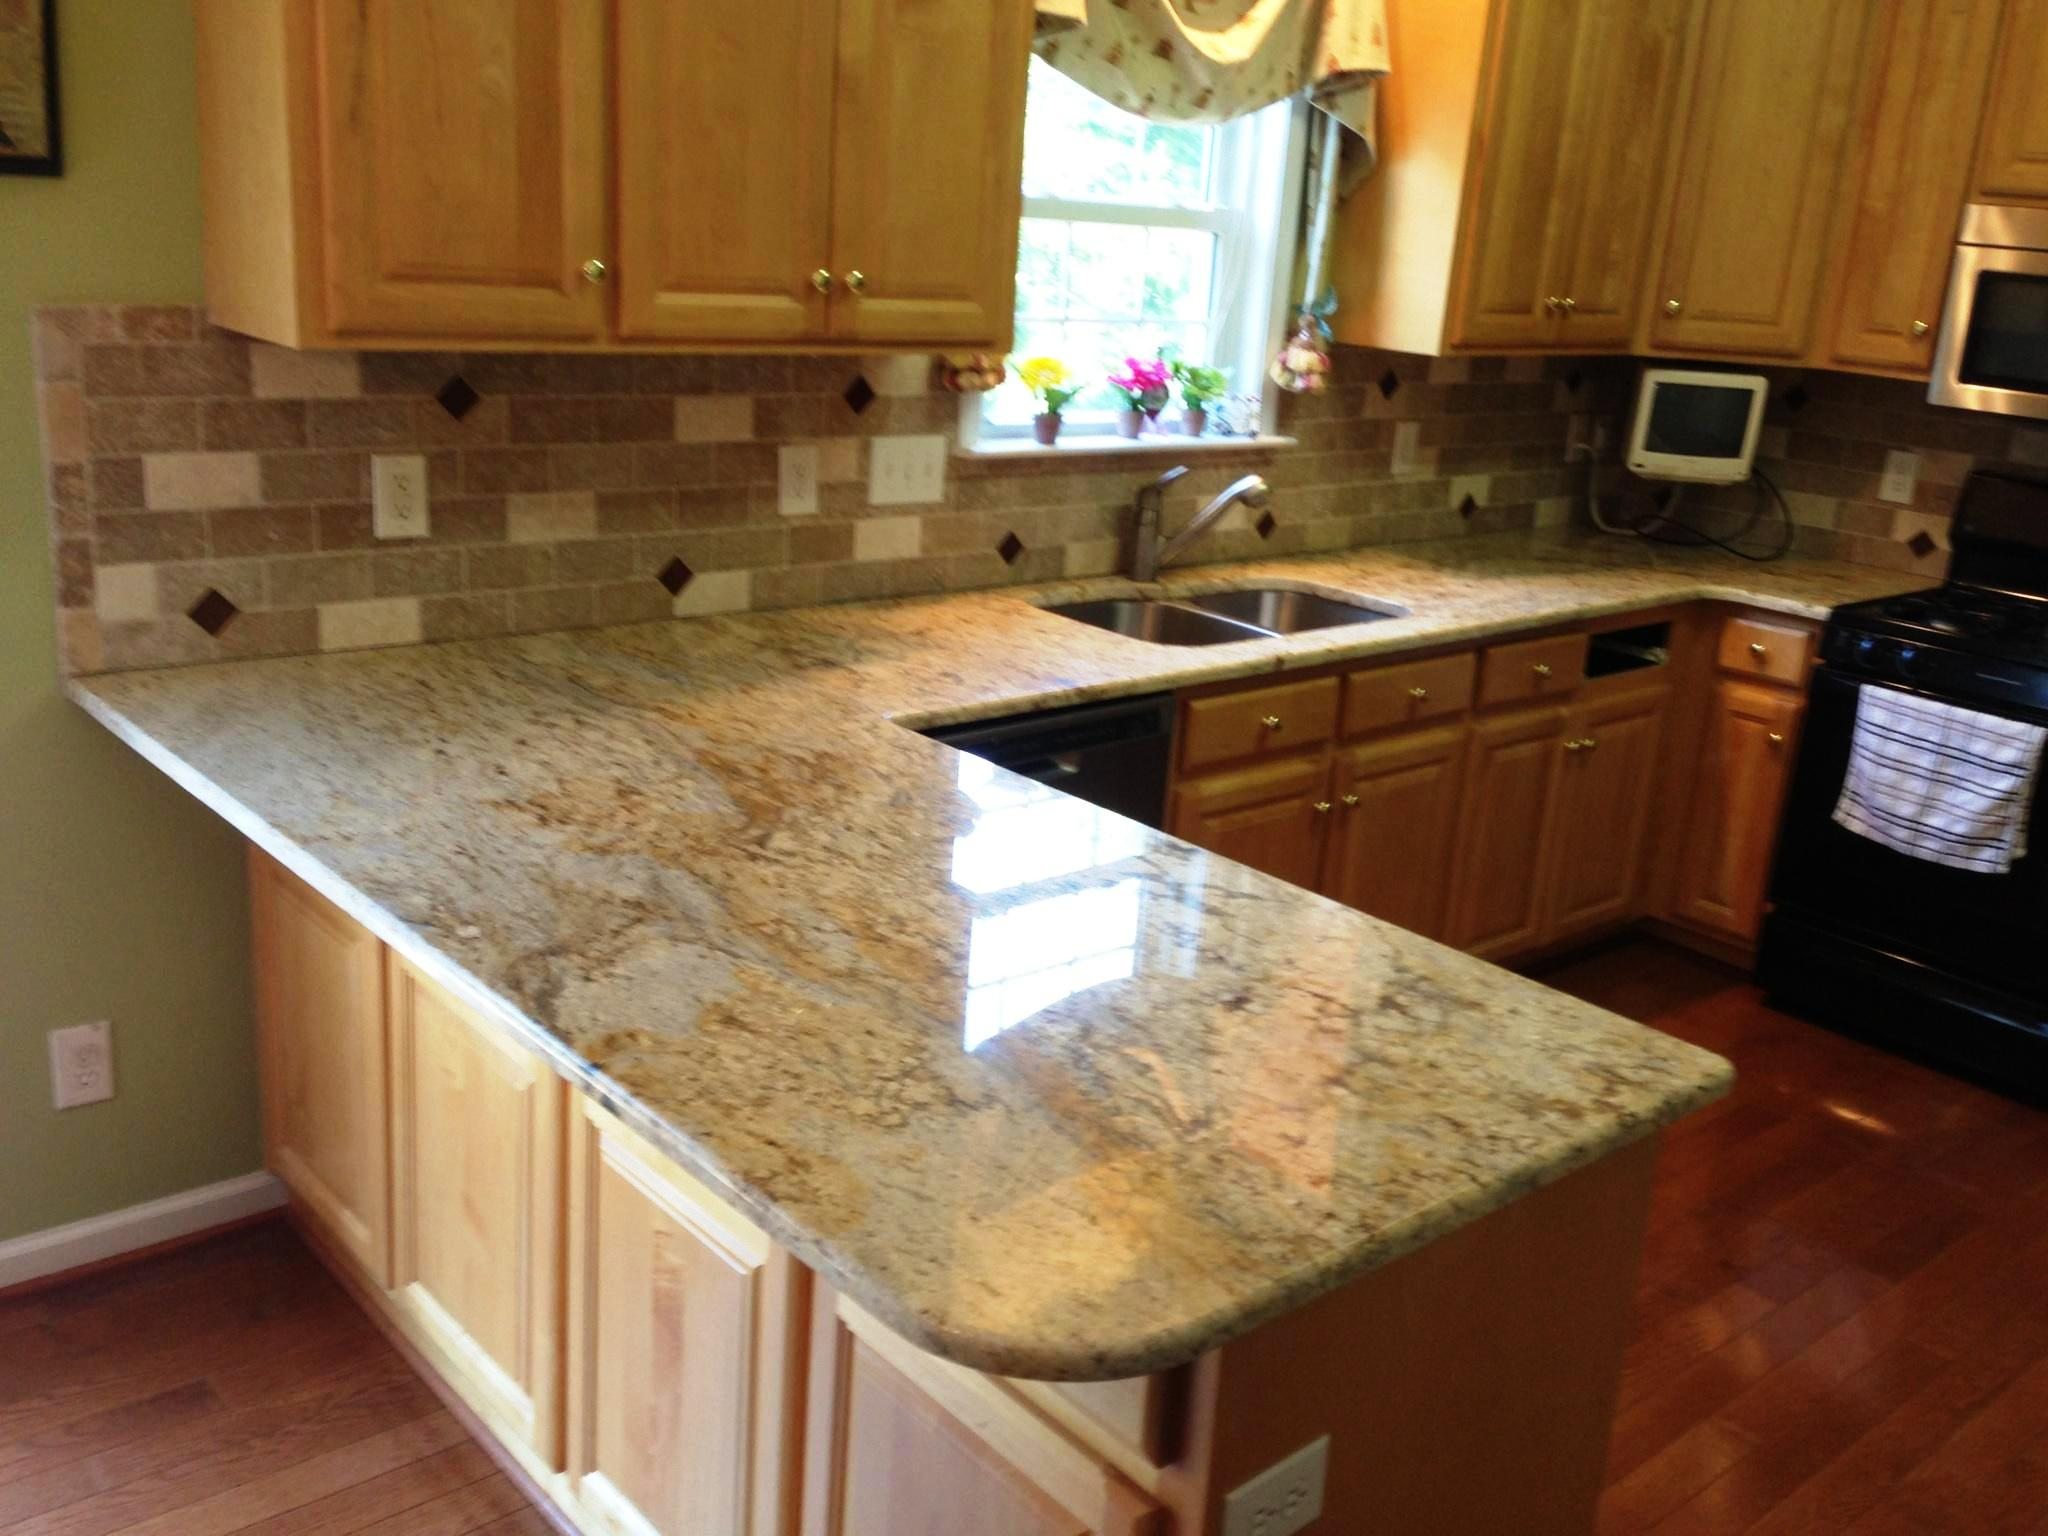 Crema Bordeaux Granite Kitchen Colonial Gold Granite Countertops Charlotte Nc